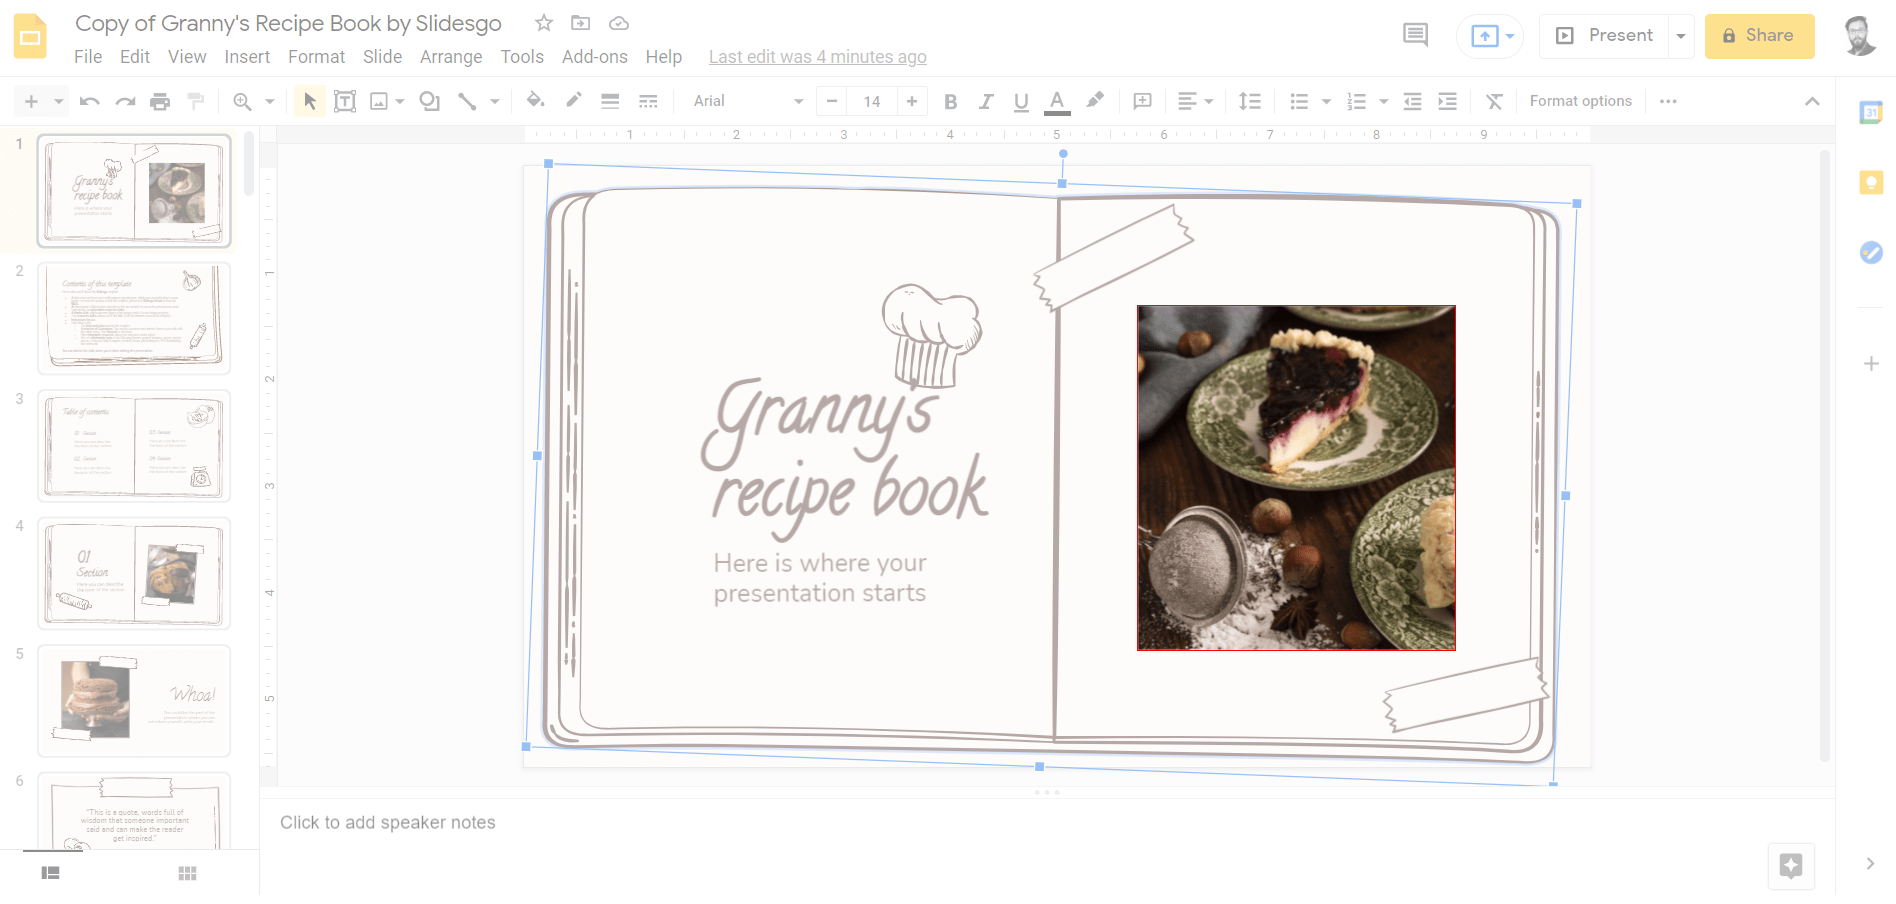 Create a rectangle around the image on the slide